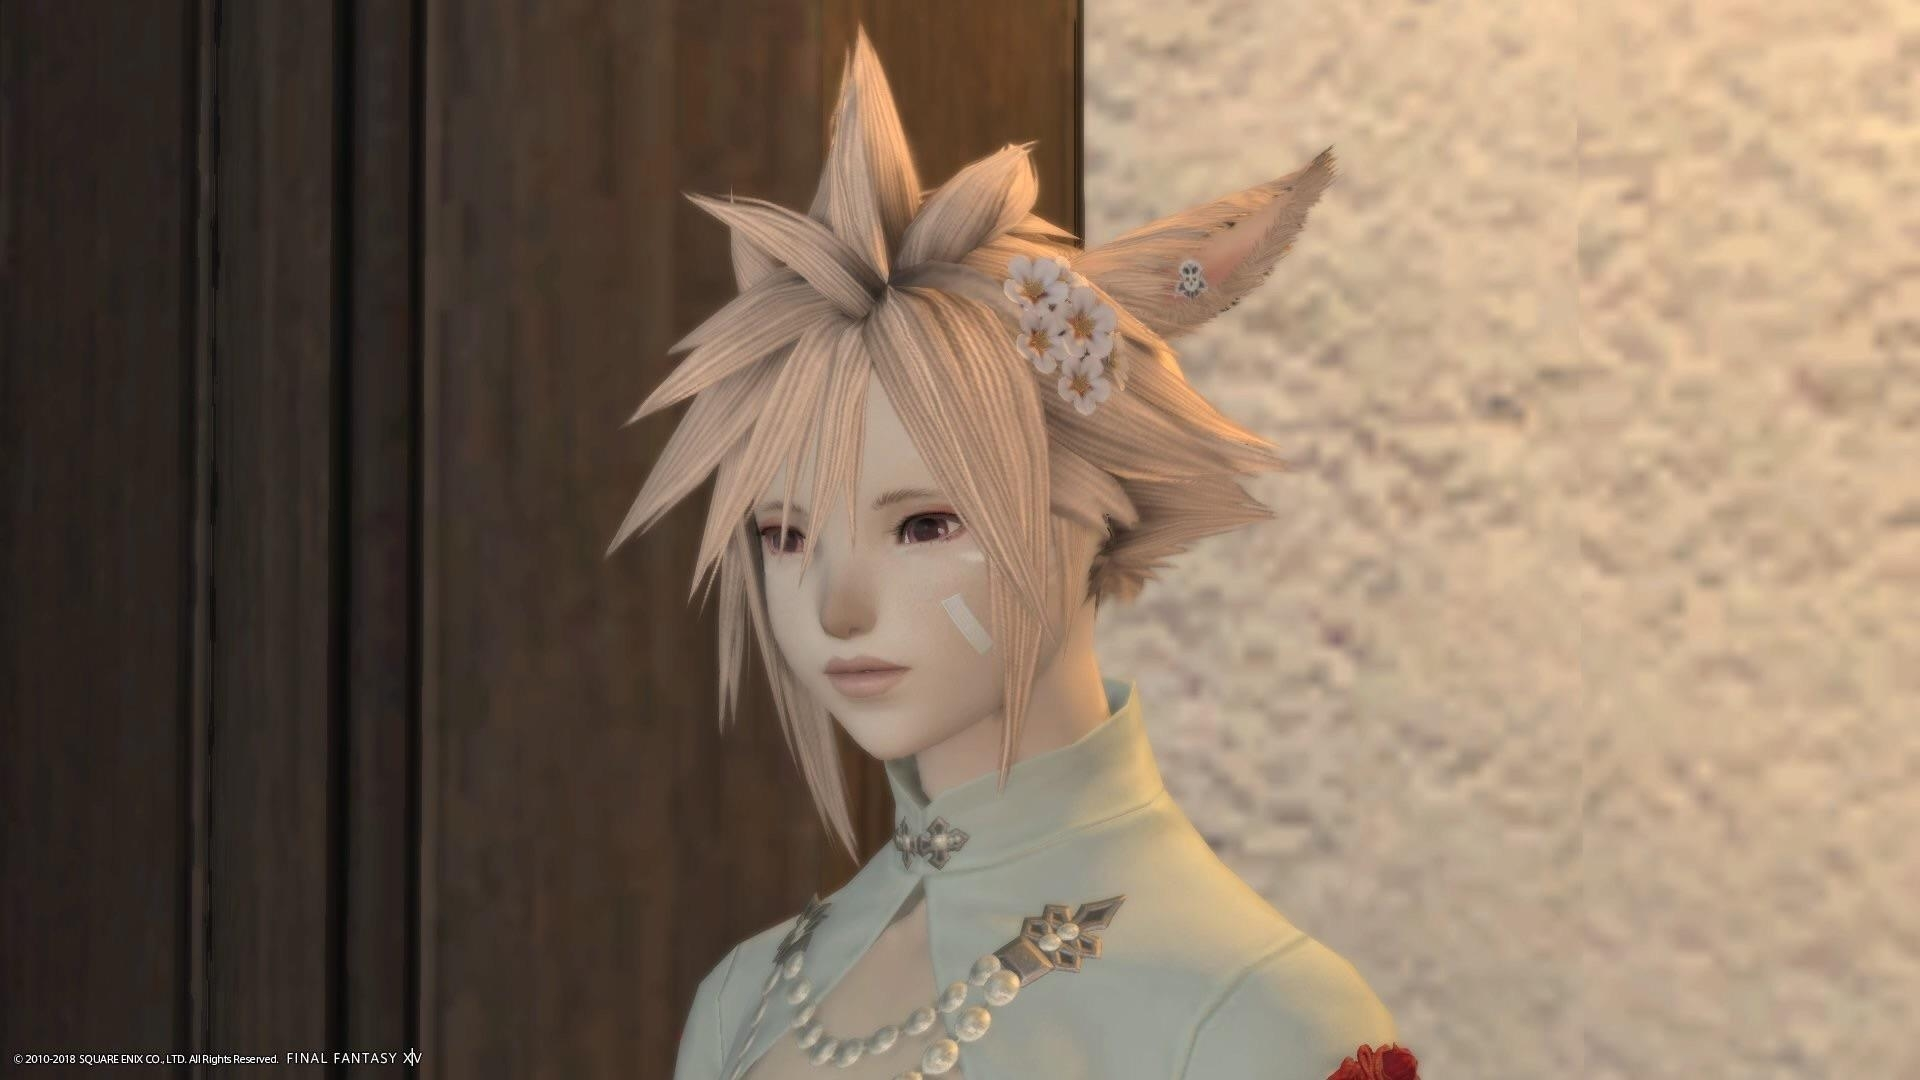 The Strife Art Contest Hairstyle Is Being Sent Out! : Ffxiv with Final Fantasy 14 Haircut